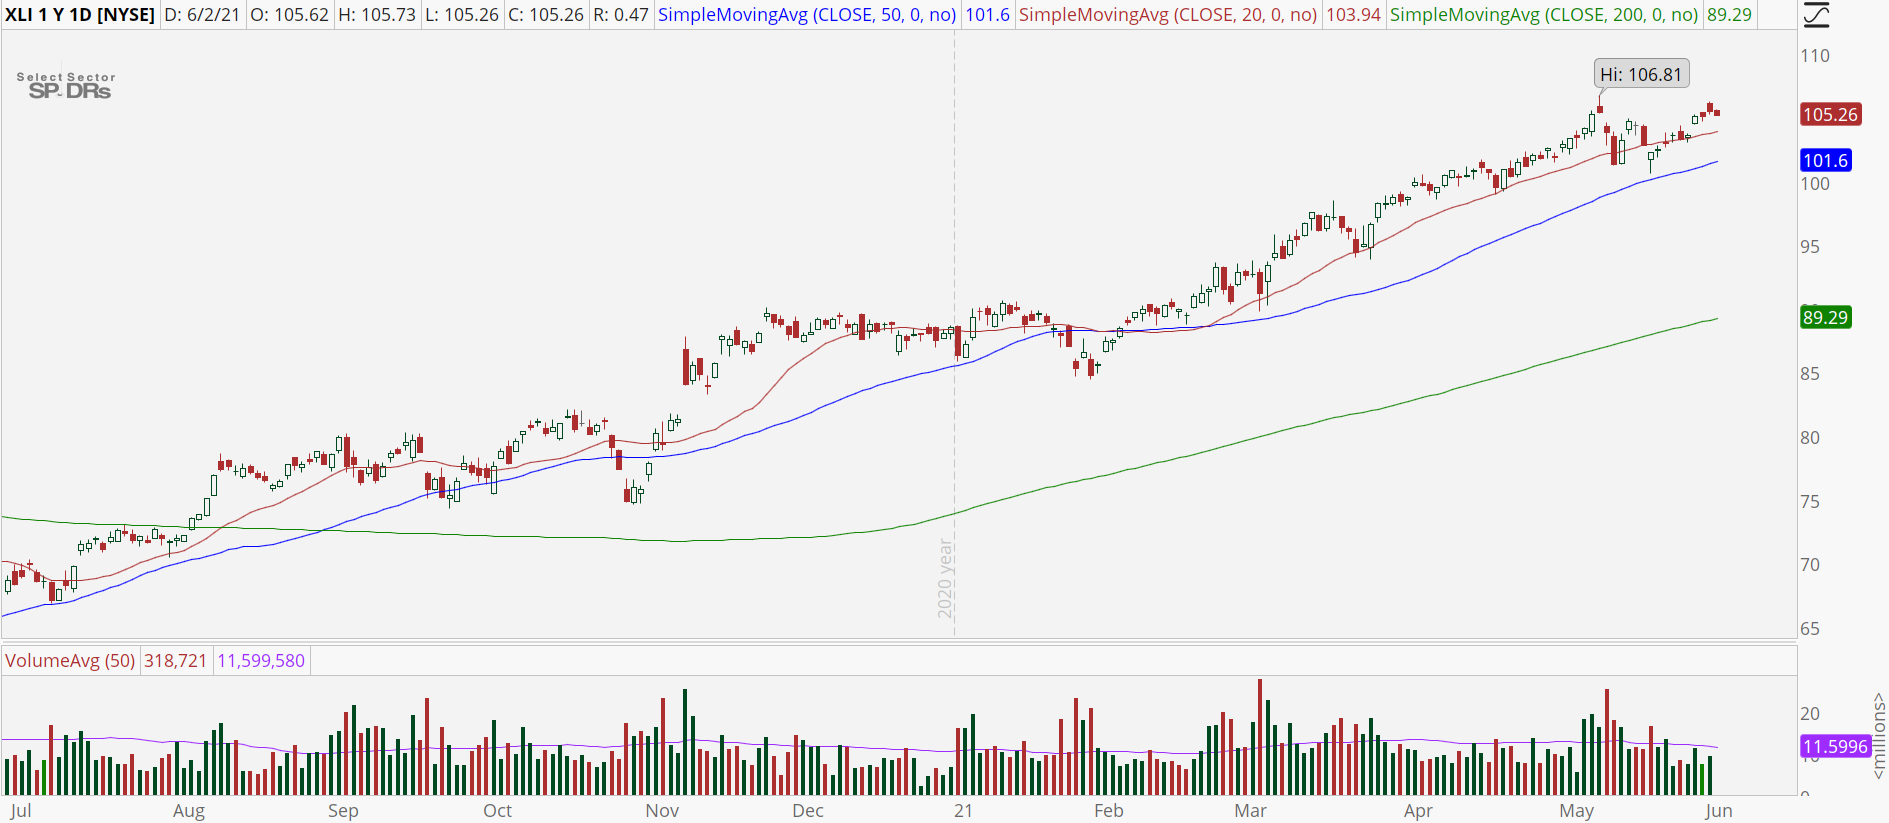 Industrial Sector (XLI) chart with powerful uptrend